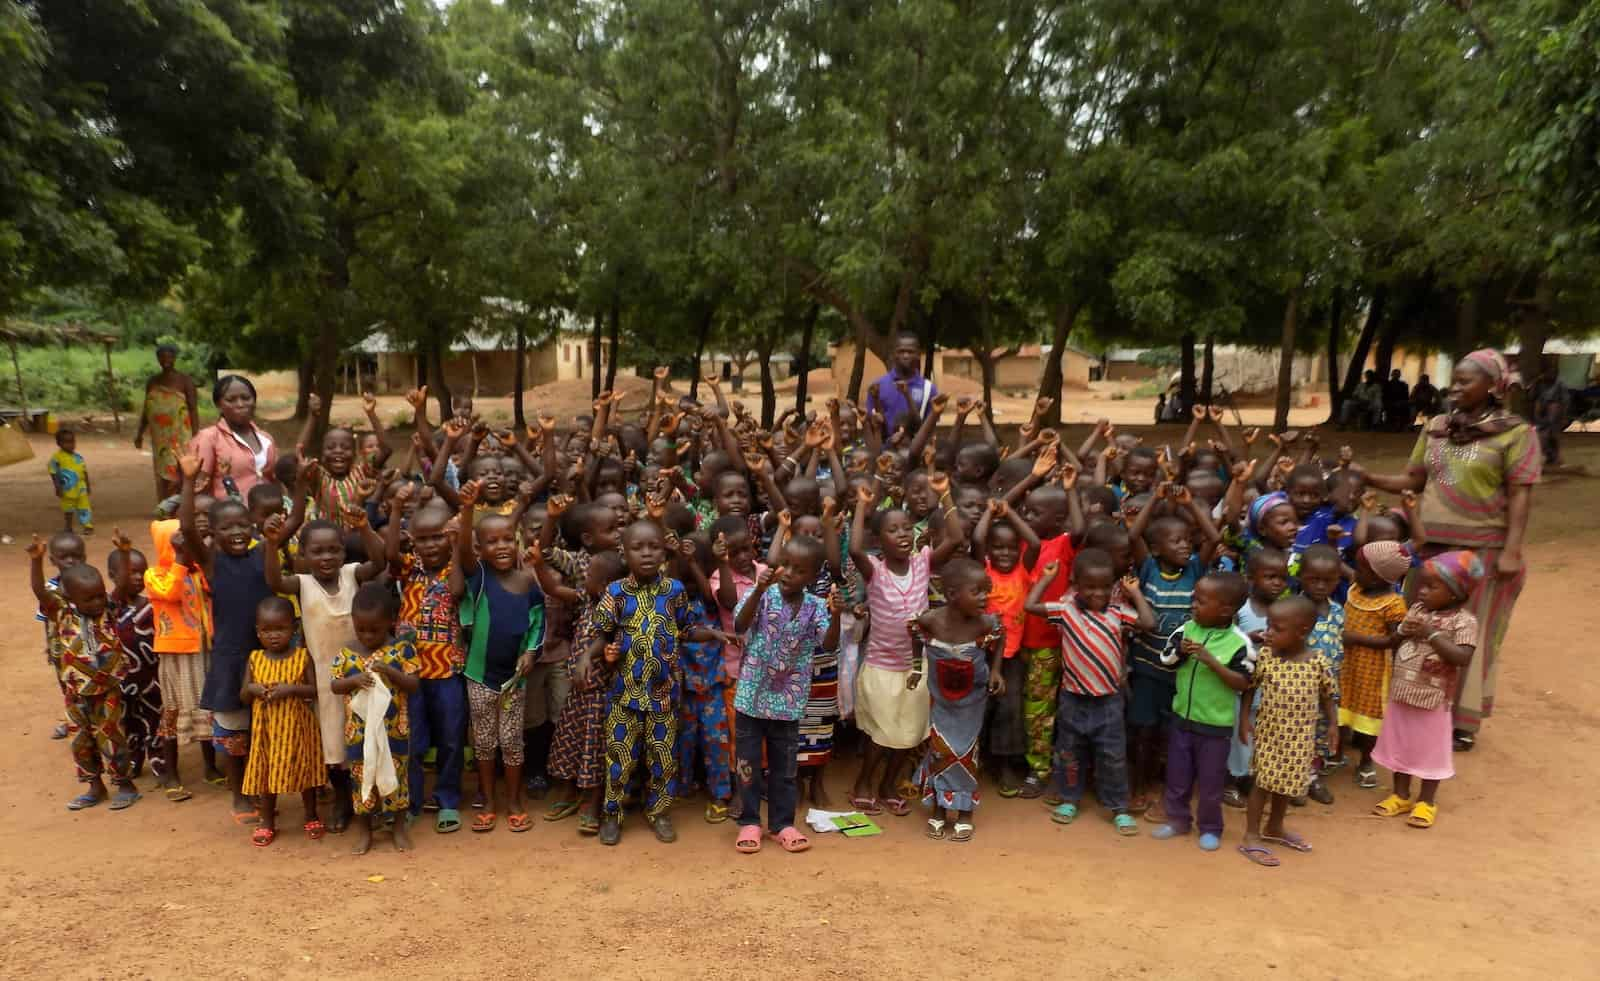 A large group of children in colorful clothes stands outside in front of a row of trees in rural Togo.